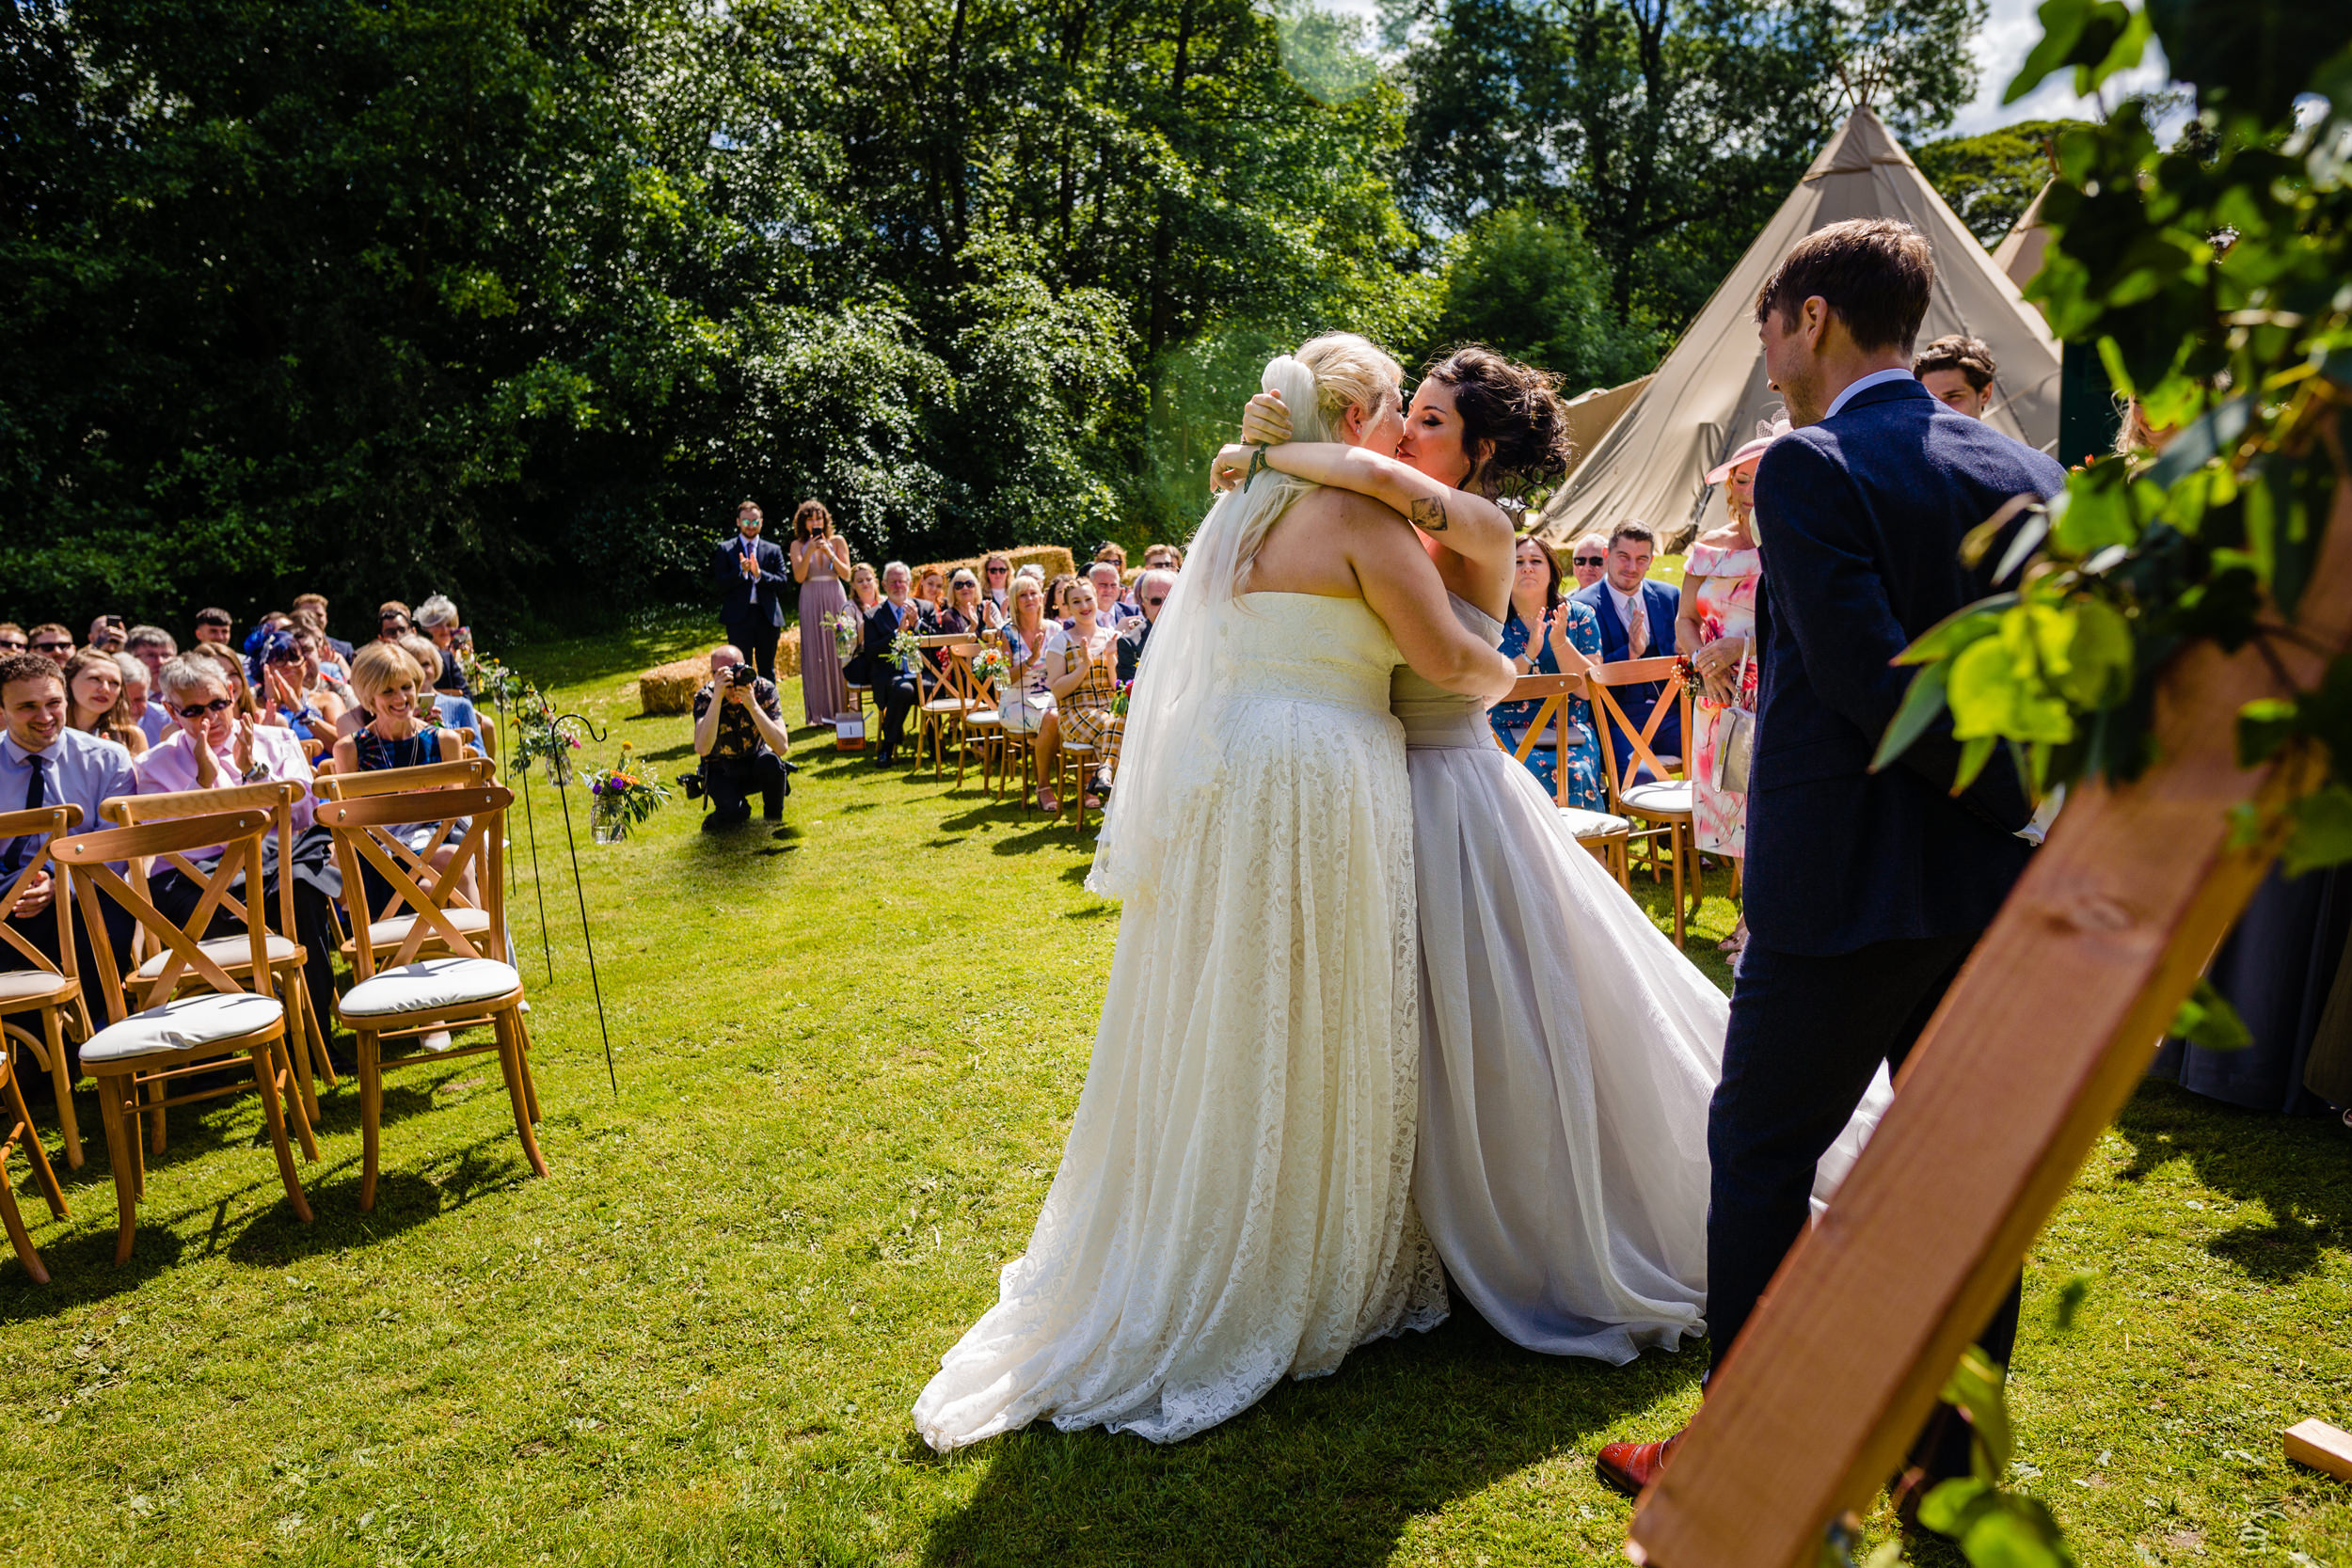 brides first kiss at wedding. plough inn, hathersage wedding photography by emma and rich.